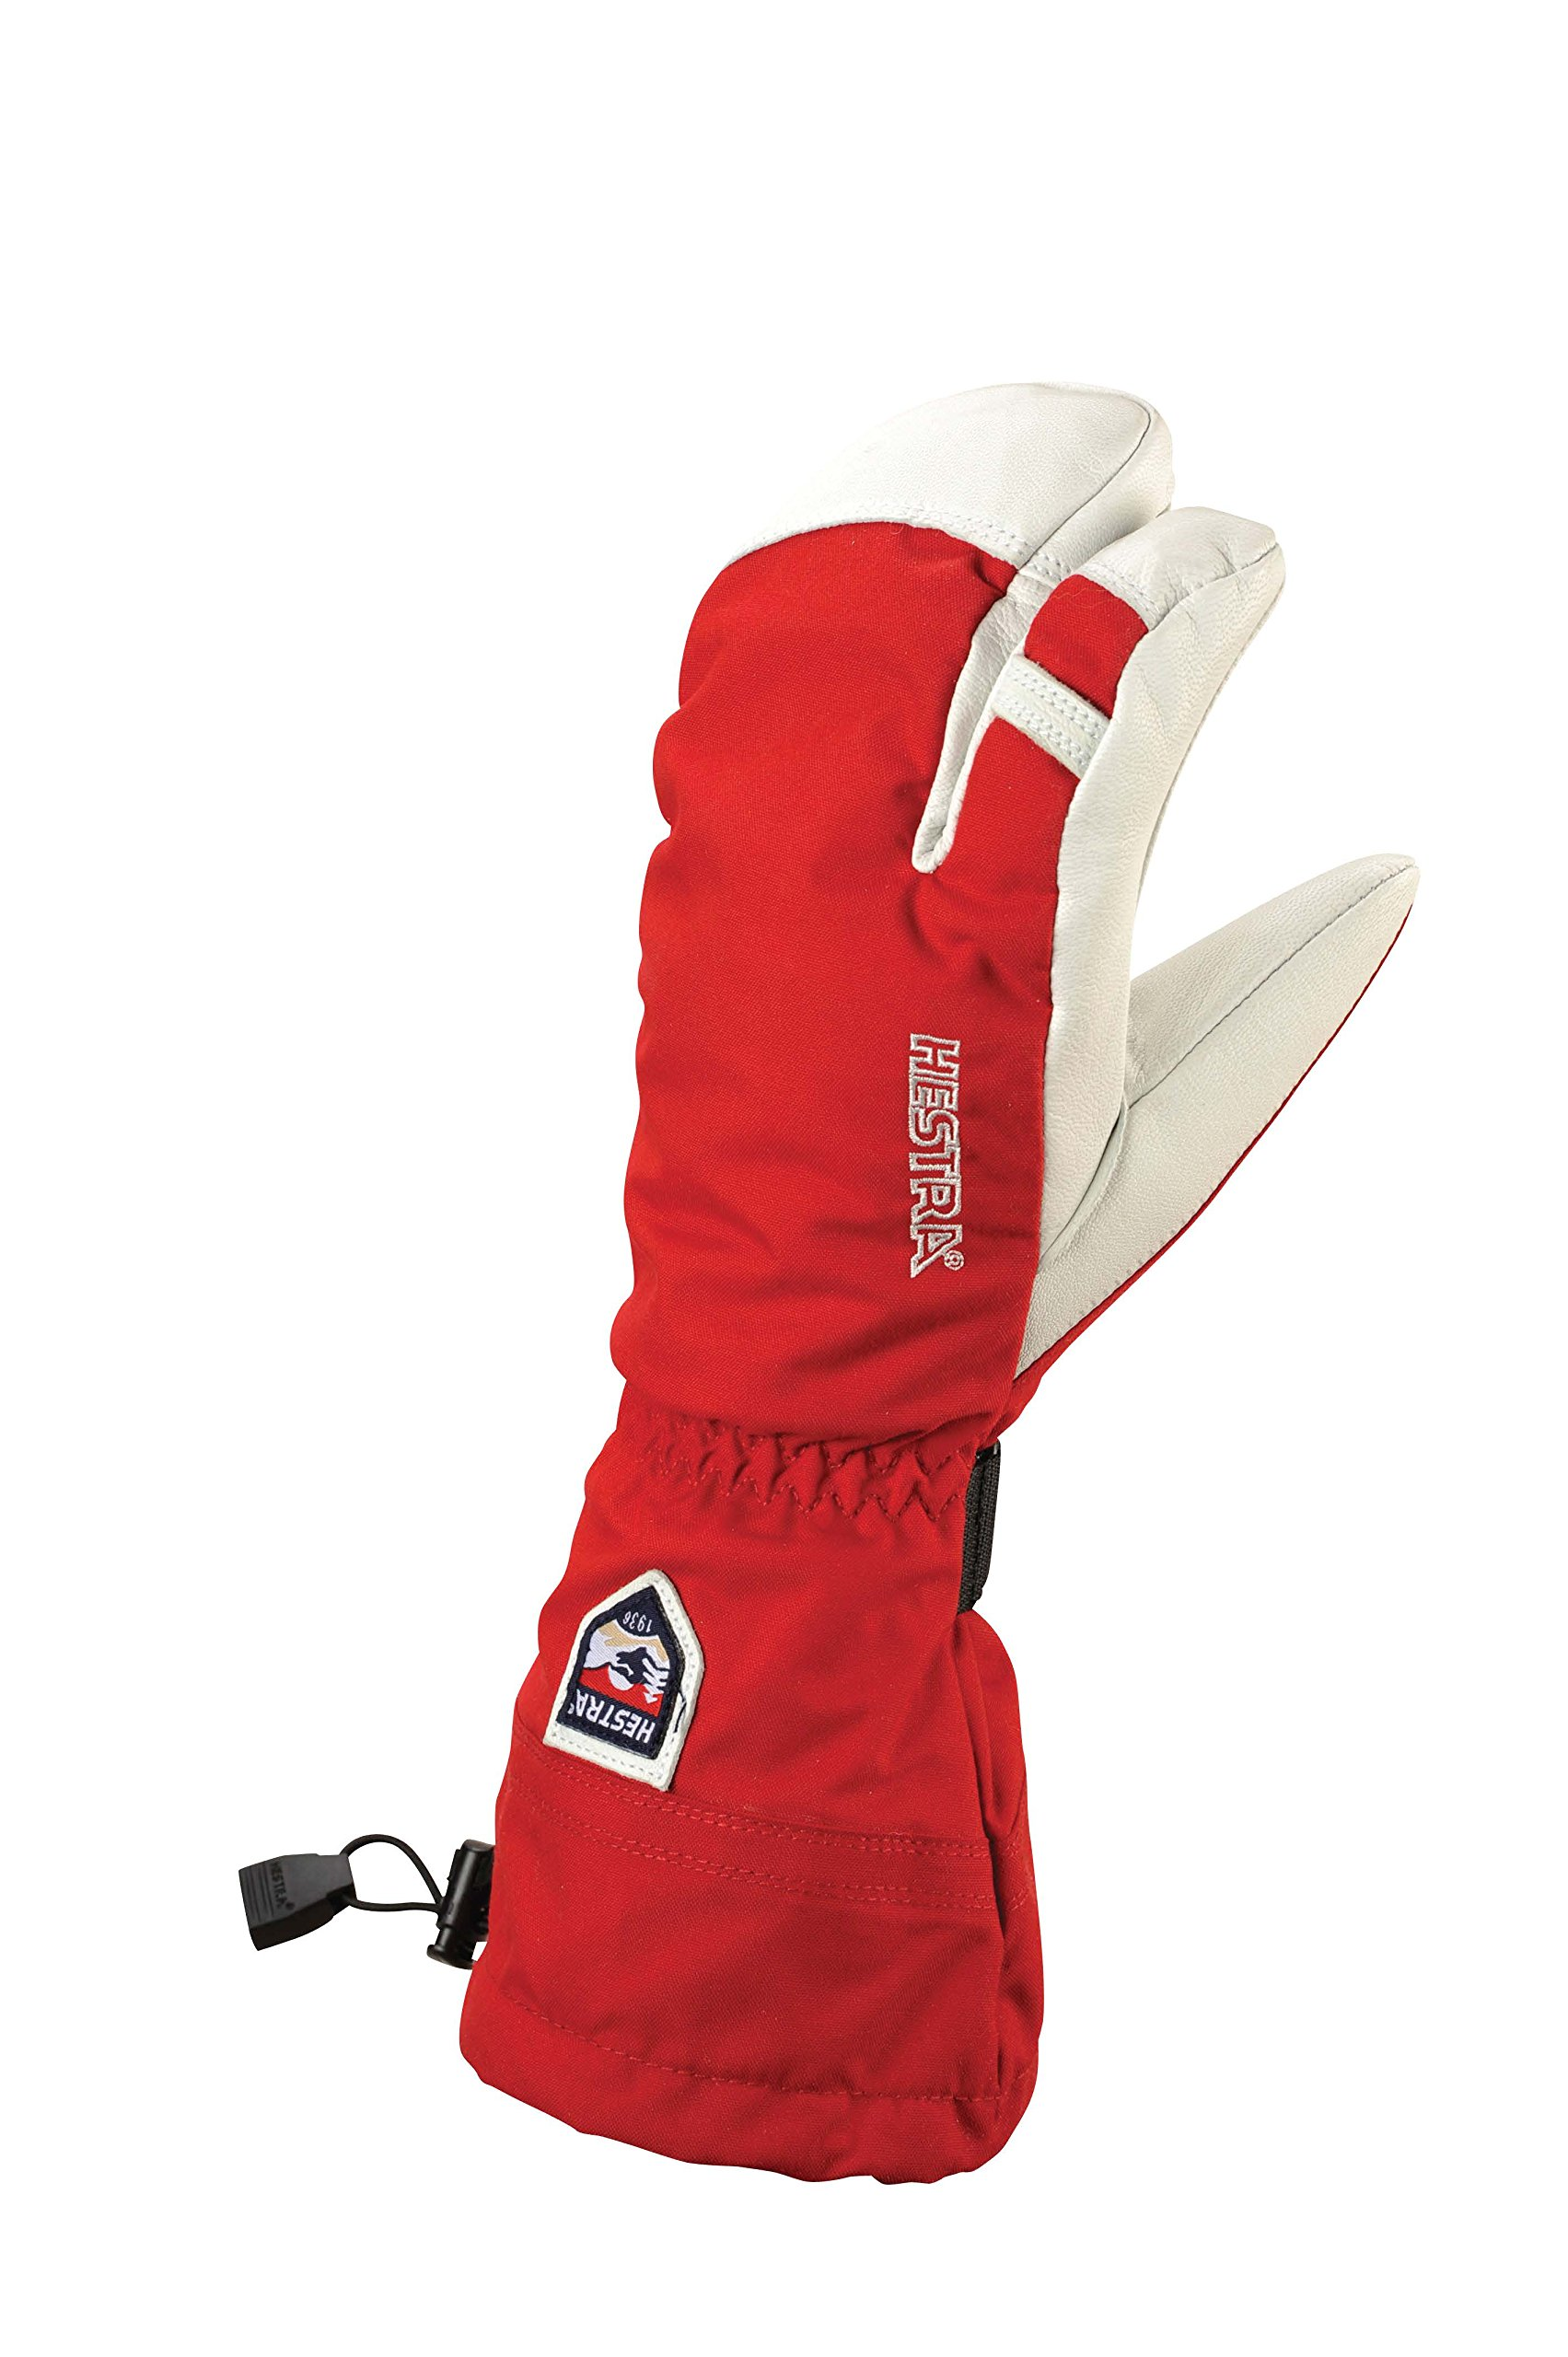 Hestra Army Leather Heli Ski 3-Finger Gloves with Gauntlet,Red,9